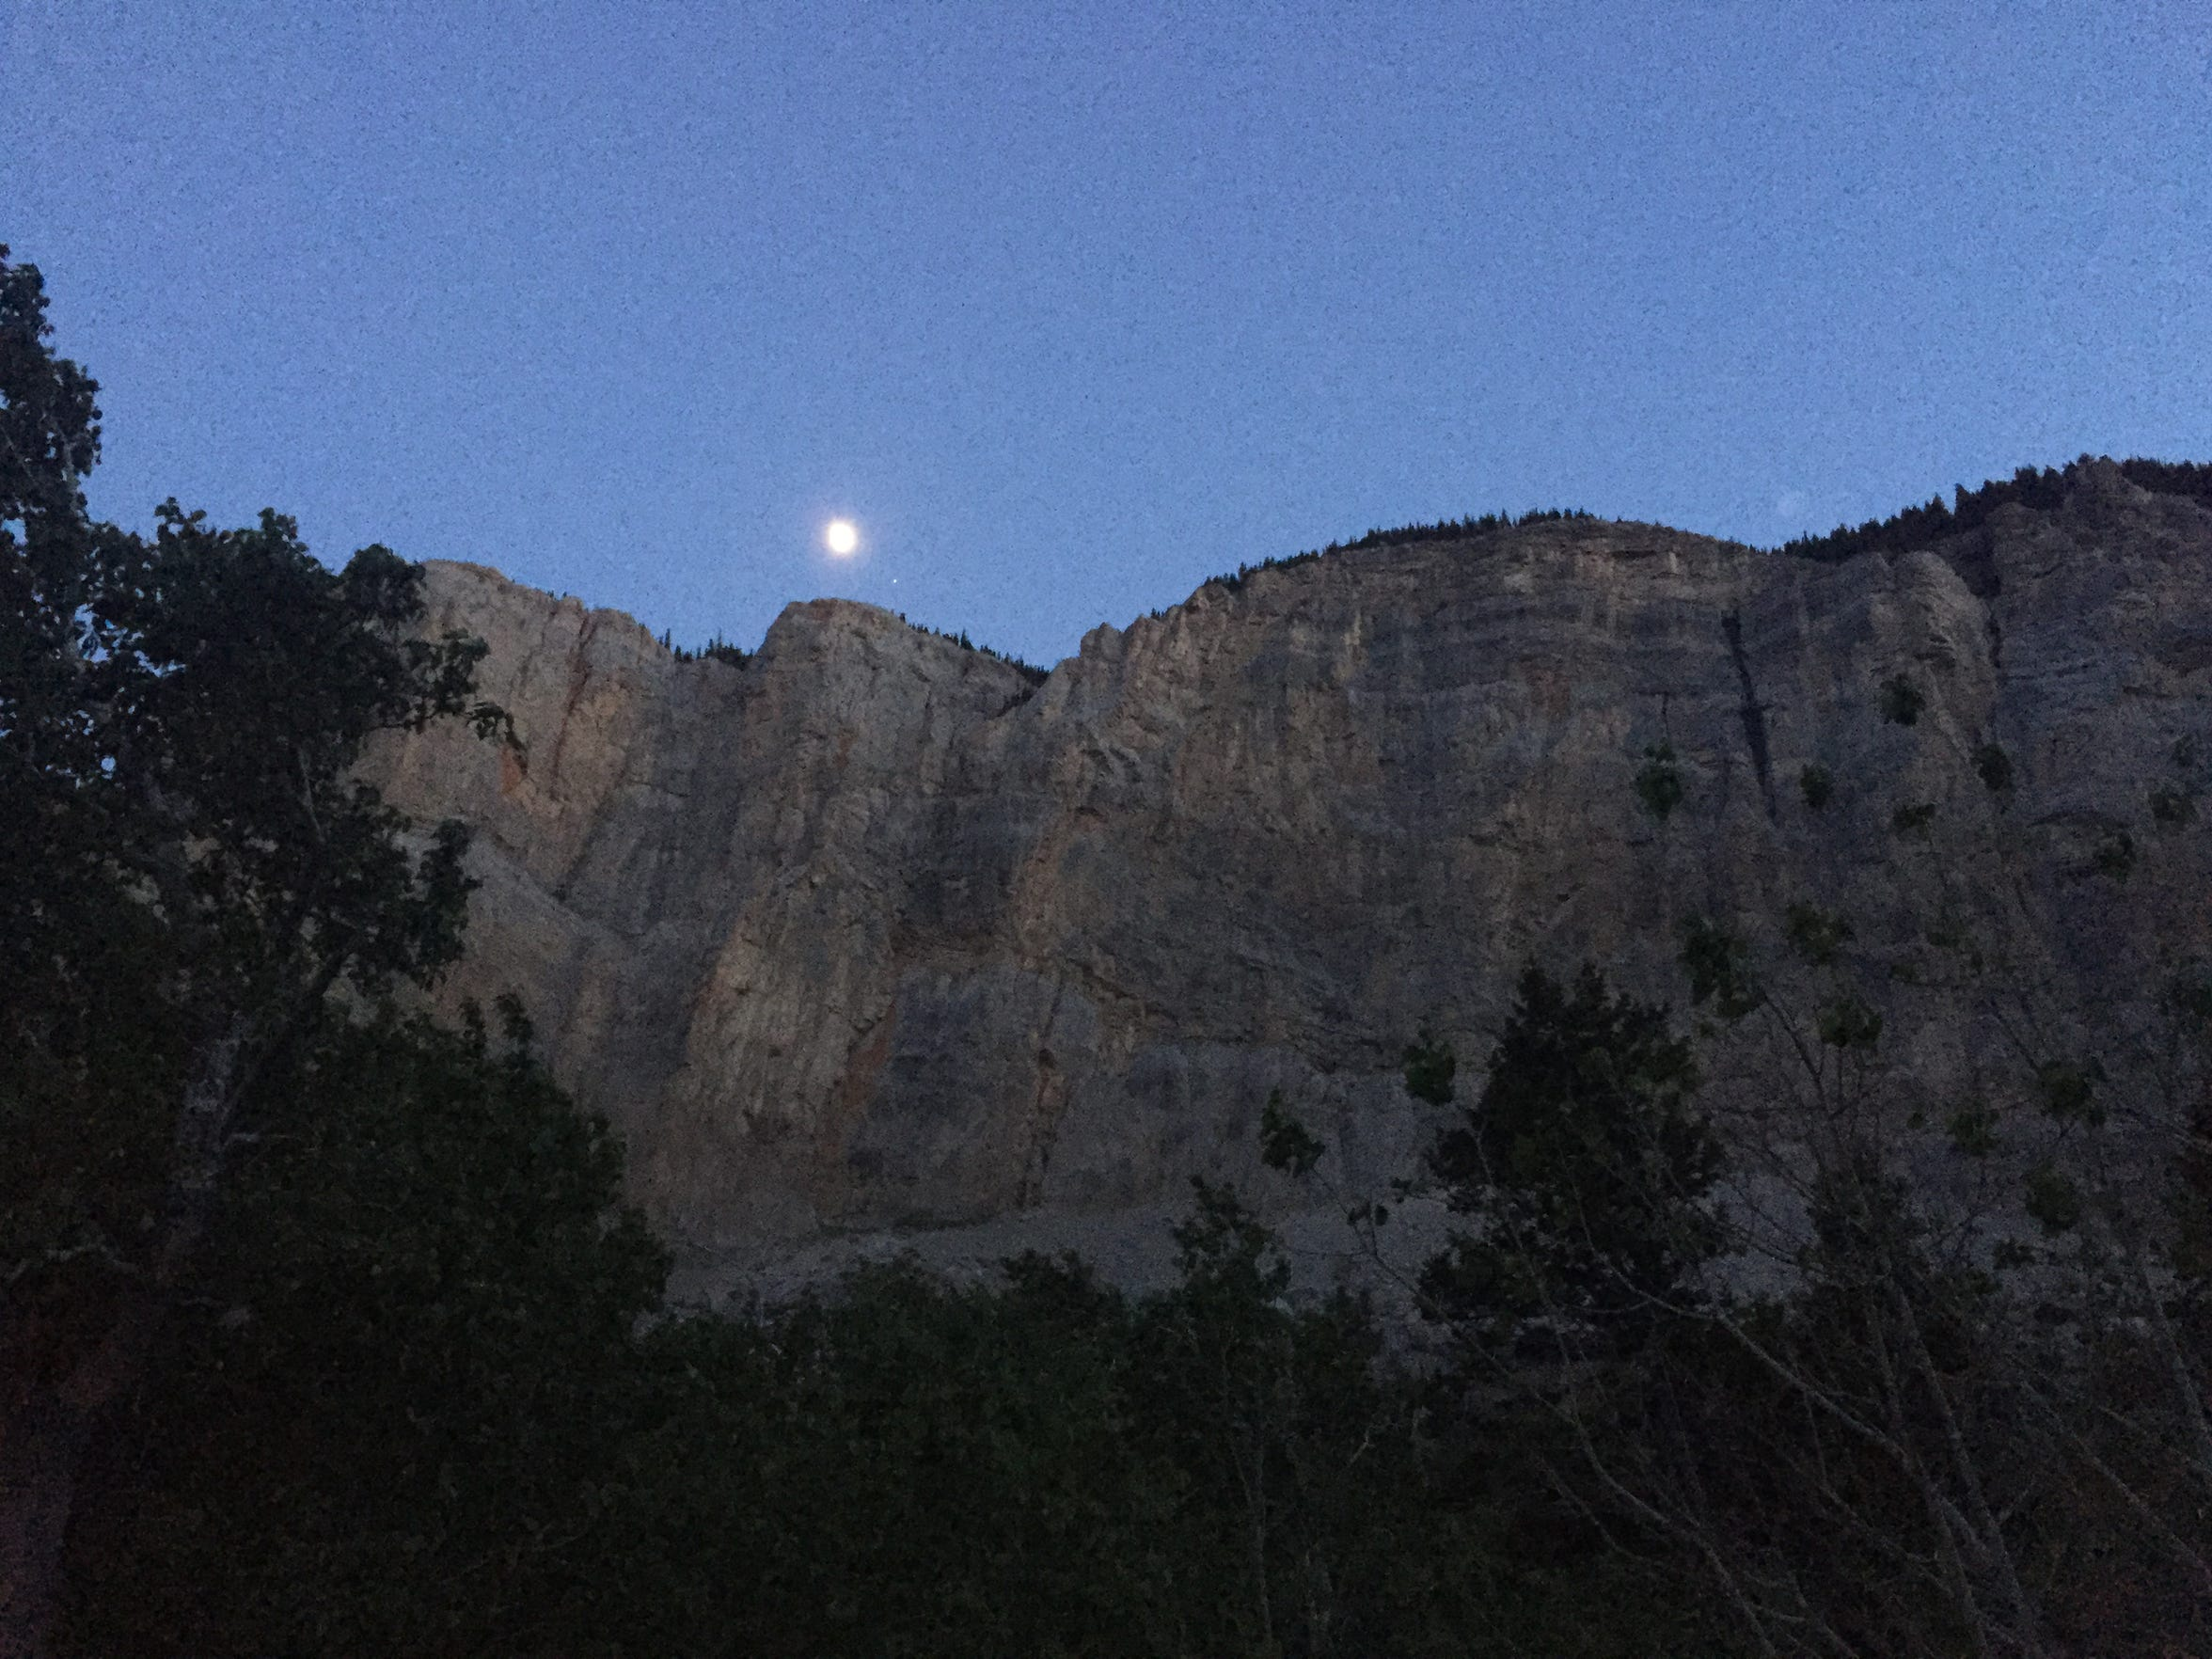 A full moon glows atop the walls of the Blackleaf Canyon. Primitive camping spots are scattered around the canyon trailhead.